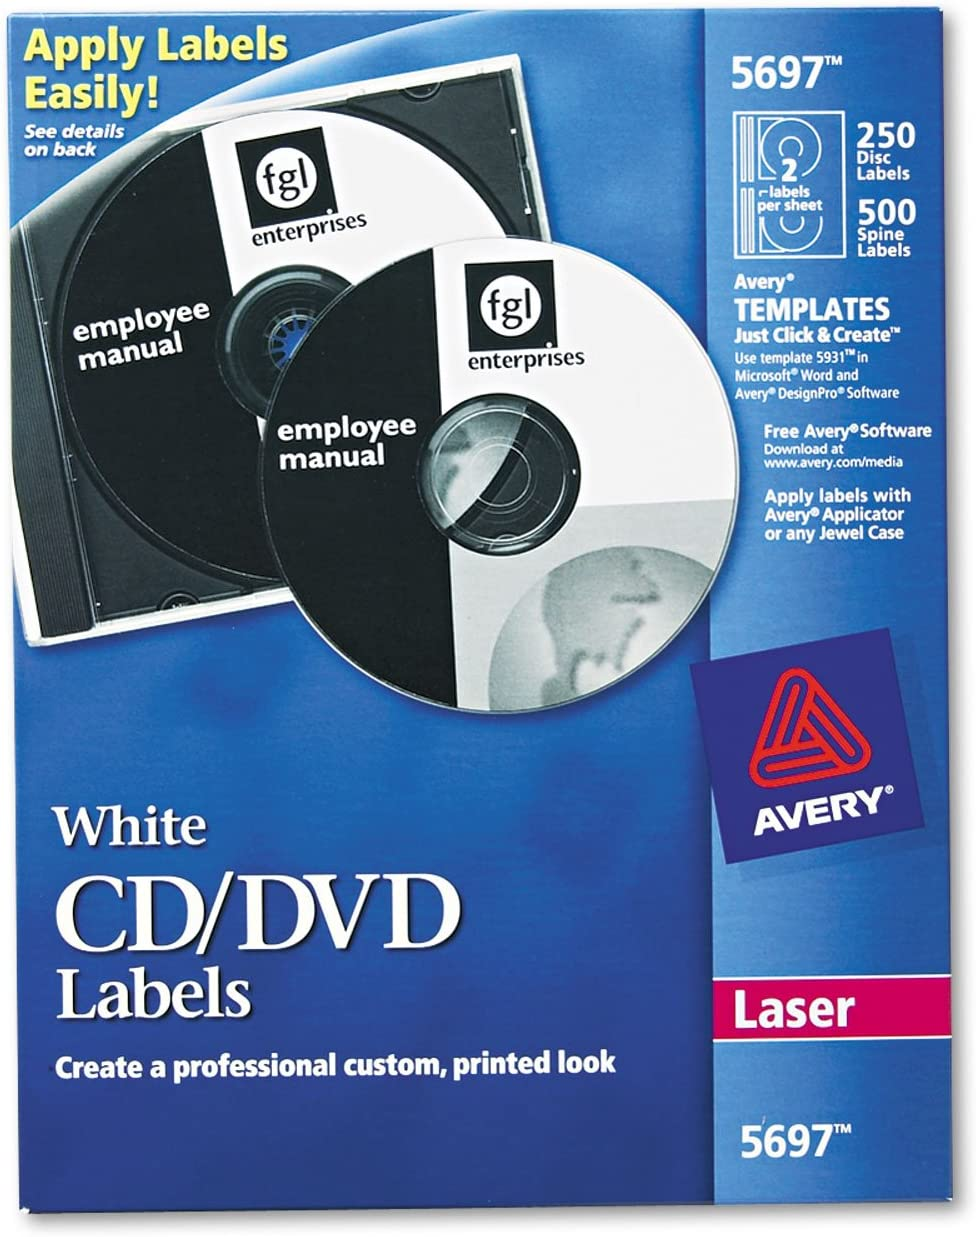 Avery All stores are sold Max 69% OFF 5697 CD DVD Labels 250 PK White Laser